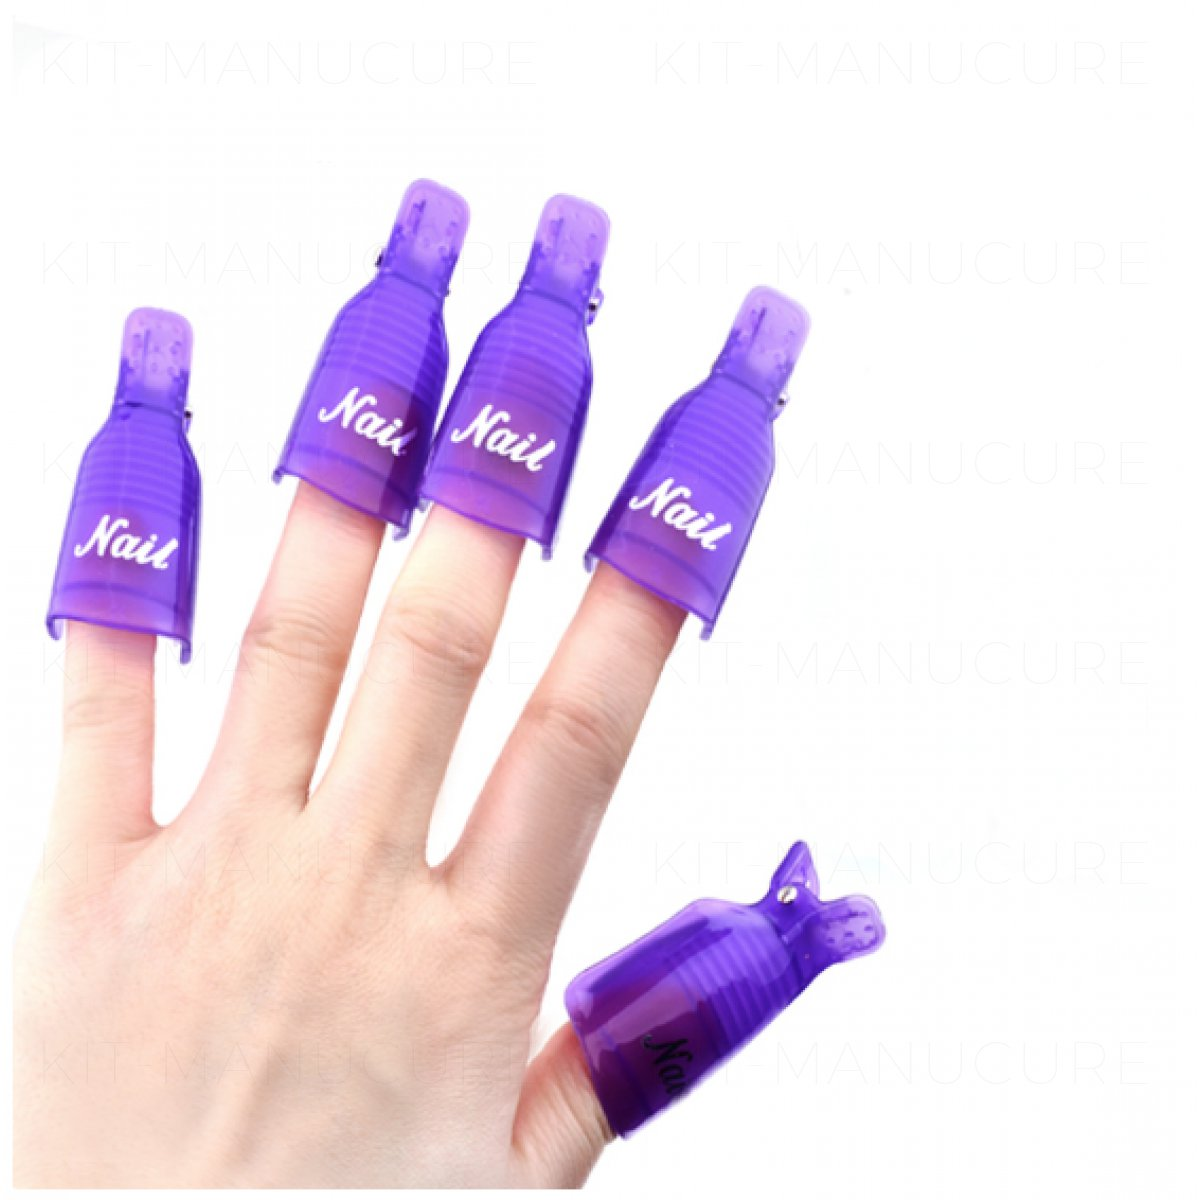 https://www.kit-manucure.com/1176-thickbox_default/pinces-dépose-vernis-semi-permanent-violet.jpg